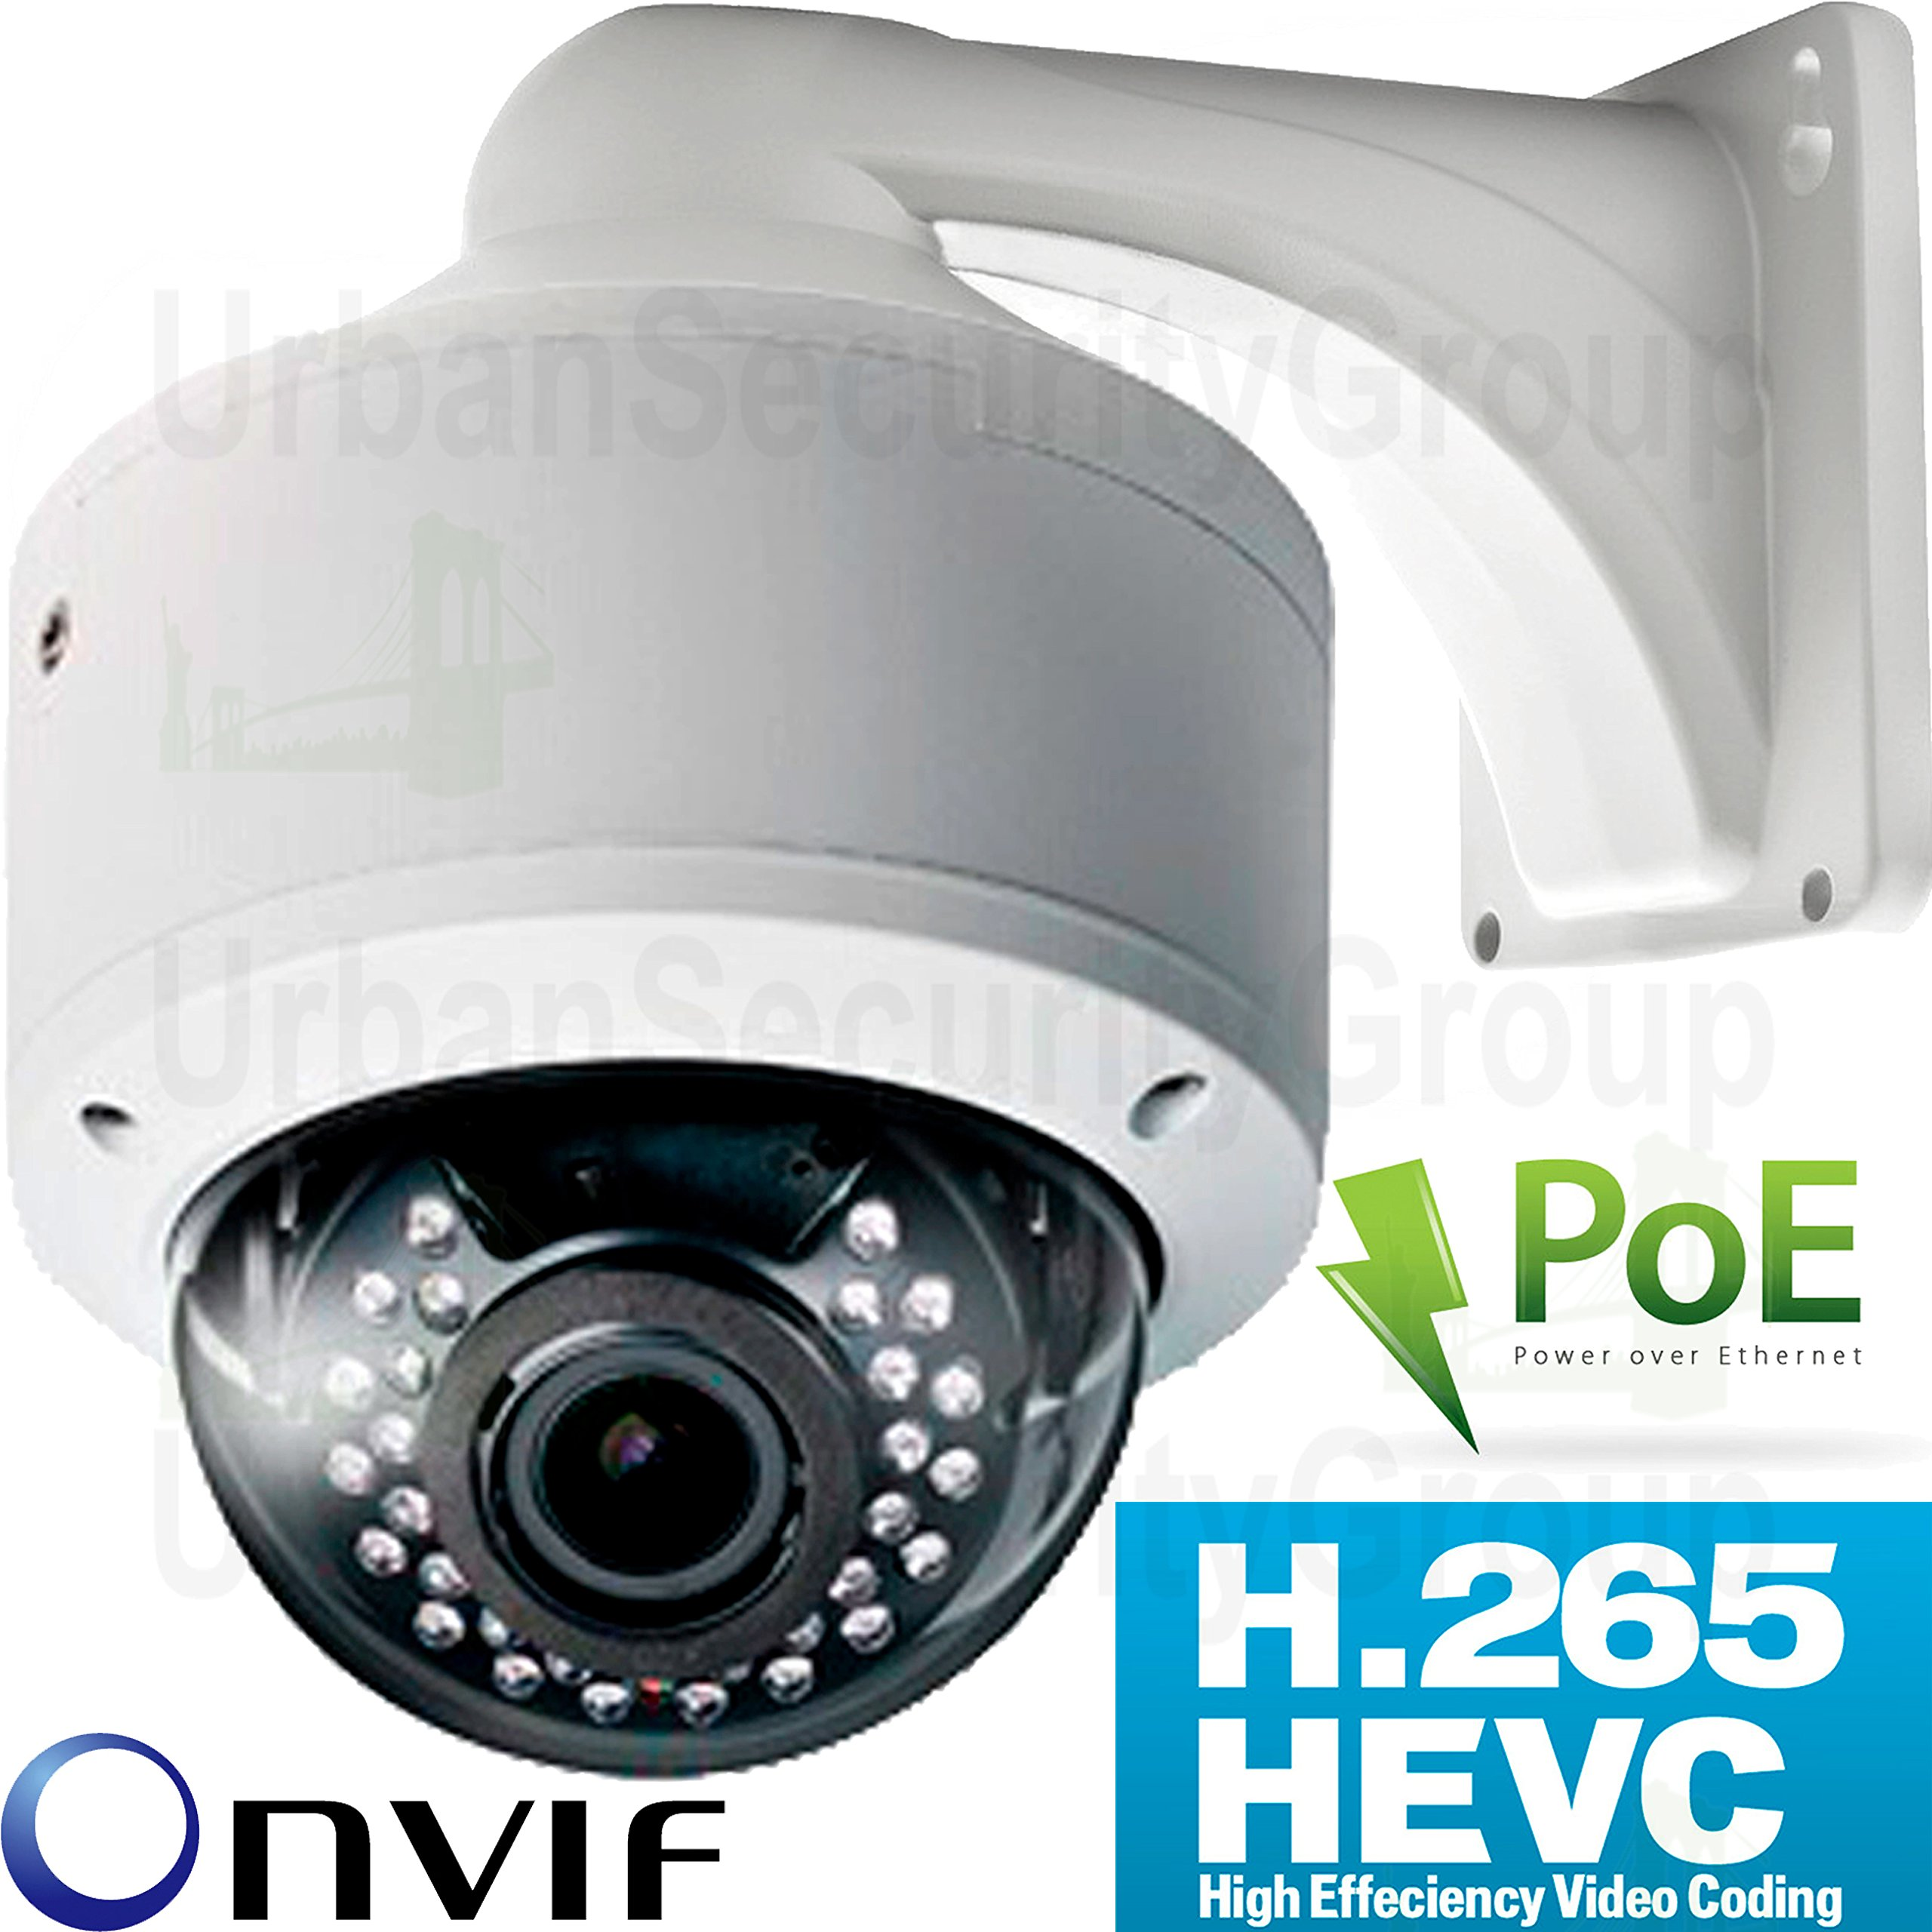 USG 4MP H.265 IP Dome Security Camera With Audio 2592x1520, 5MP 2.8-12mm HD Lens, PoE, 30x IR LEDs, Vandal & Weatherproof, ONVIF 2.4, View On Phone + Computer + NVR Business Grade IP CCTV